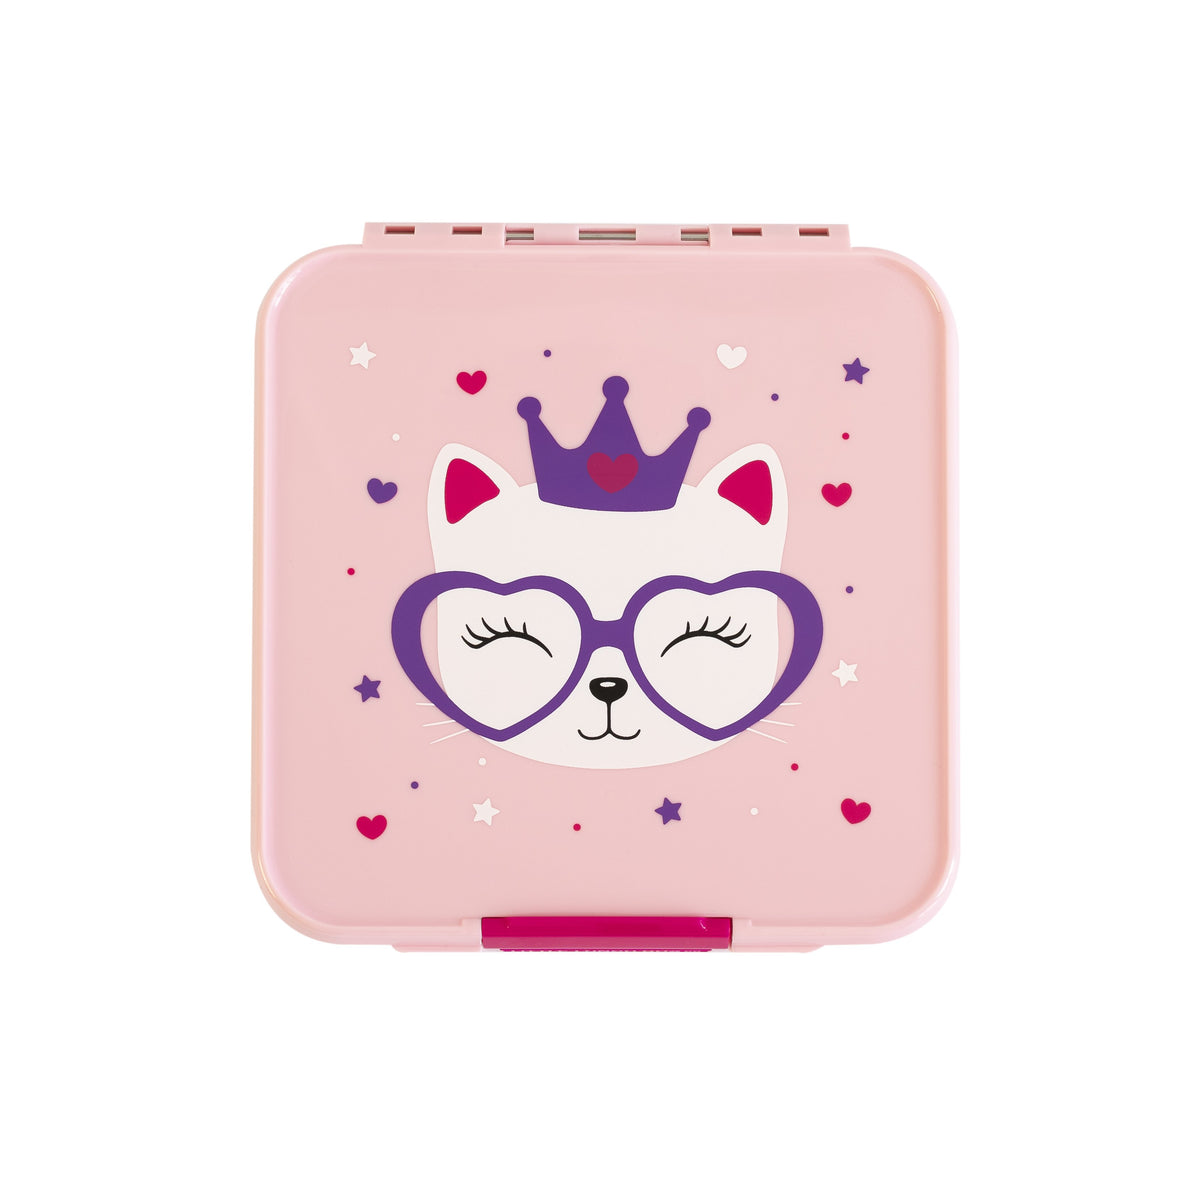 Little Lunch Box Co - Bento Two - Kitty